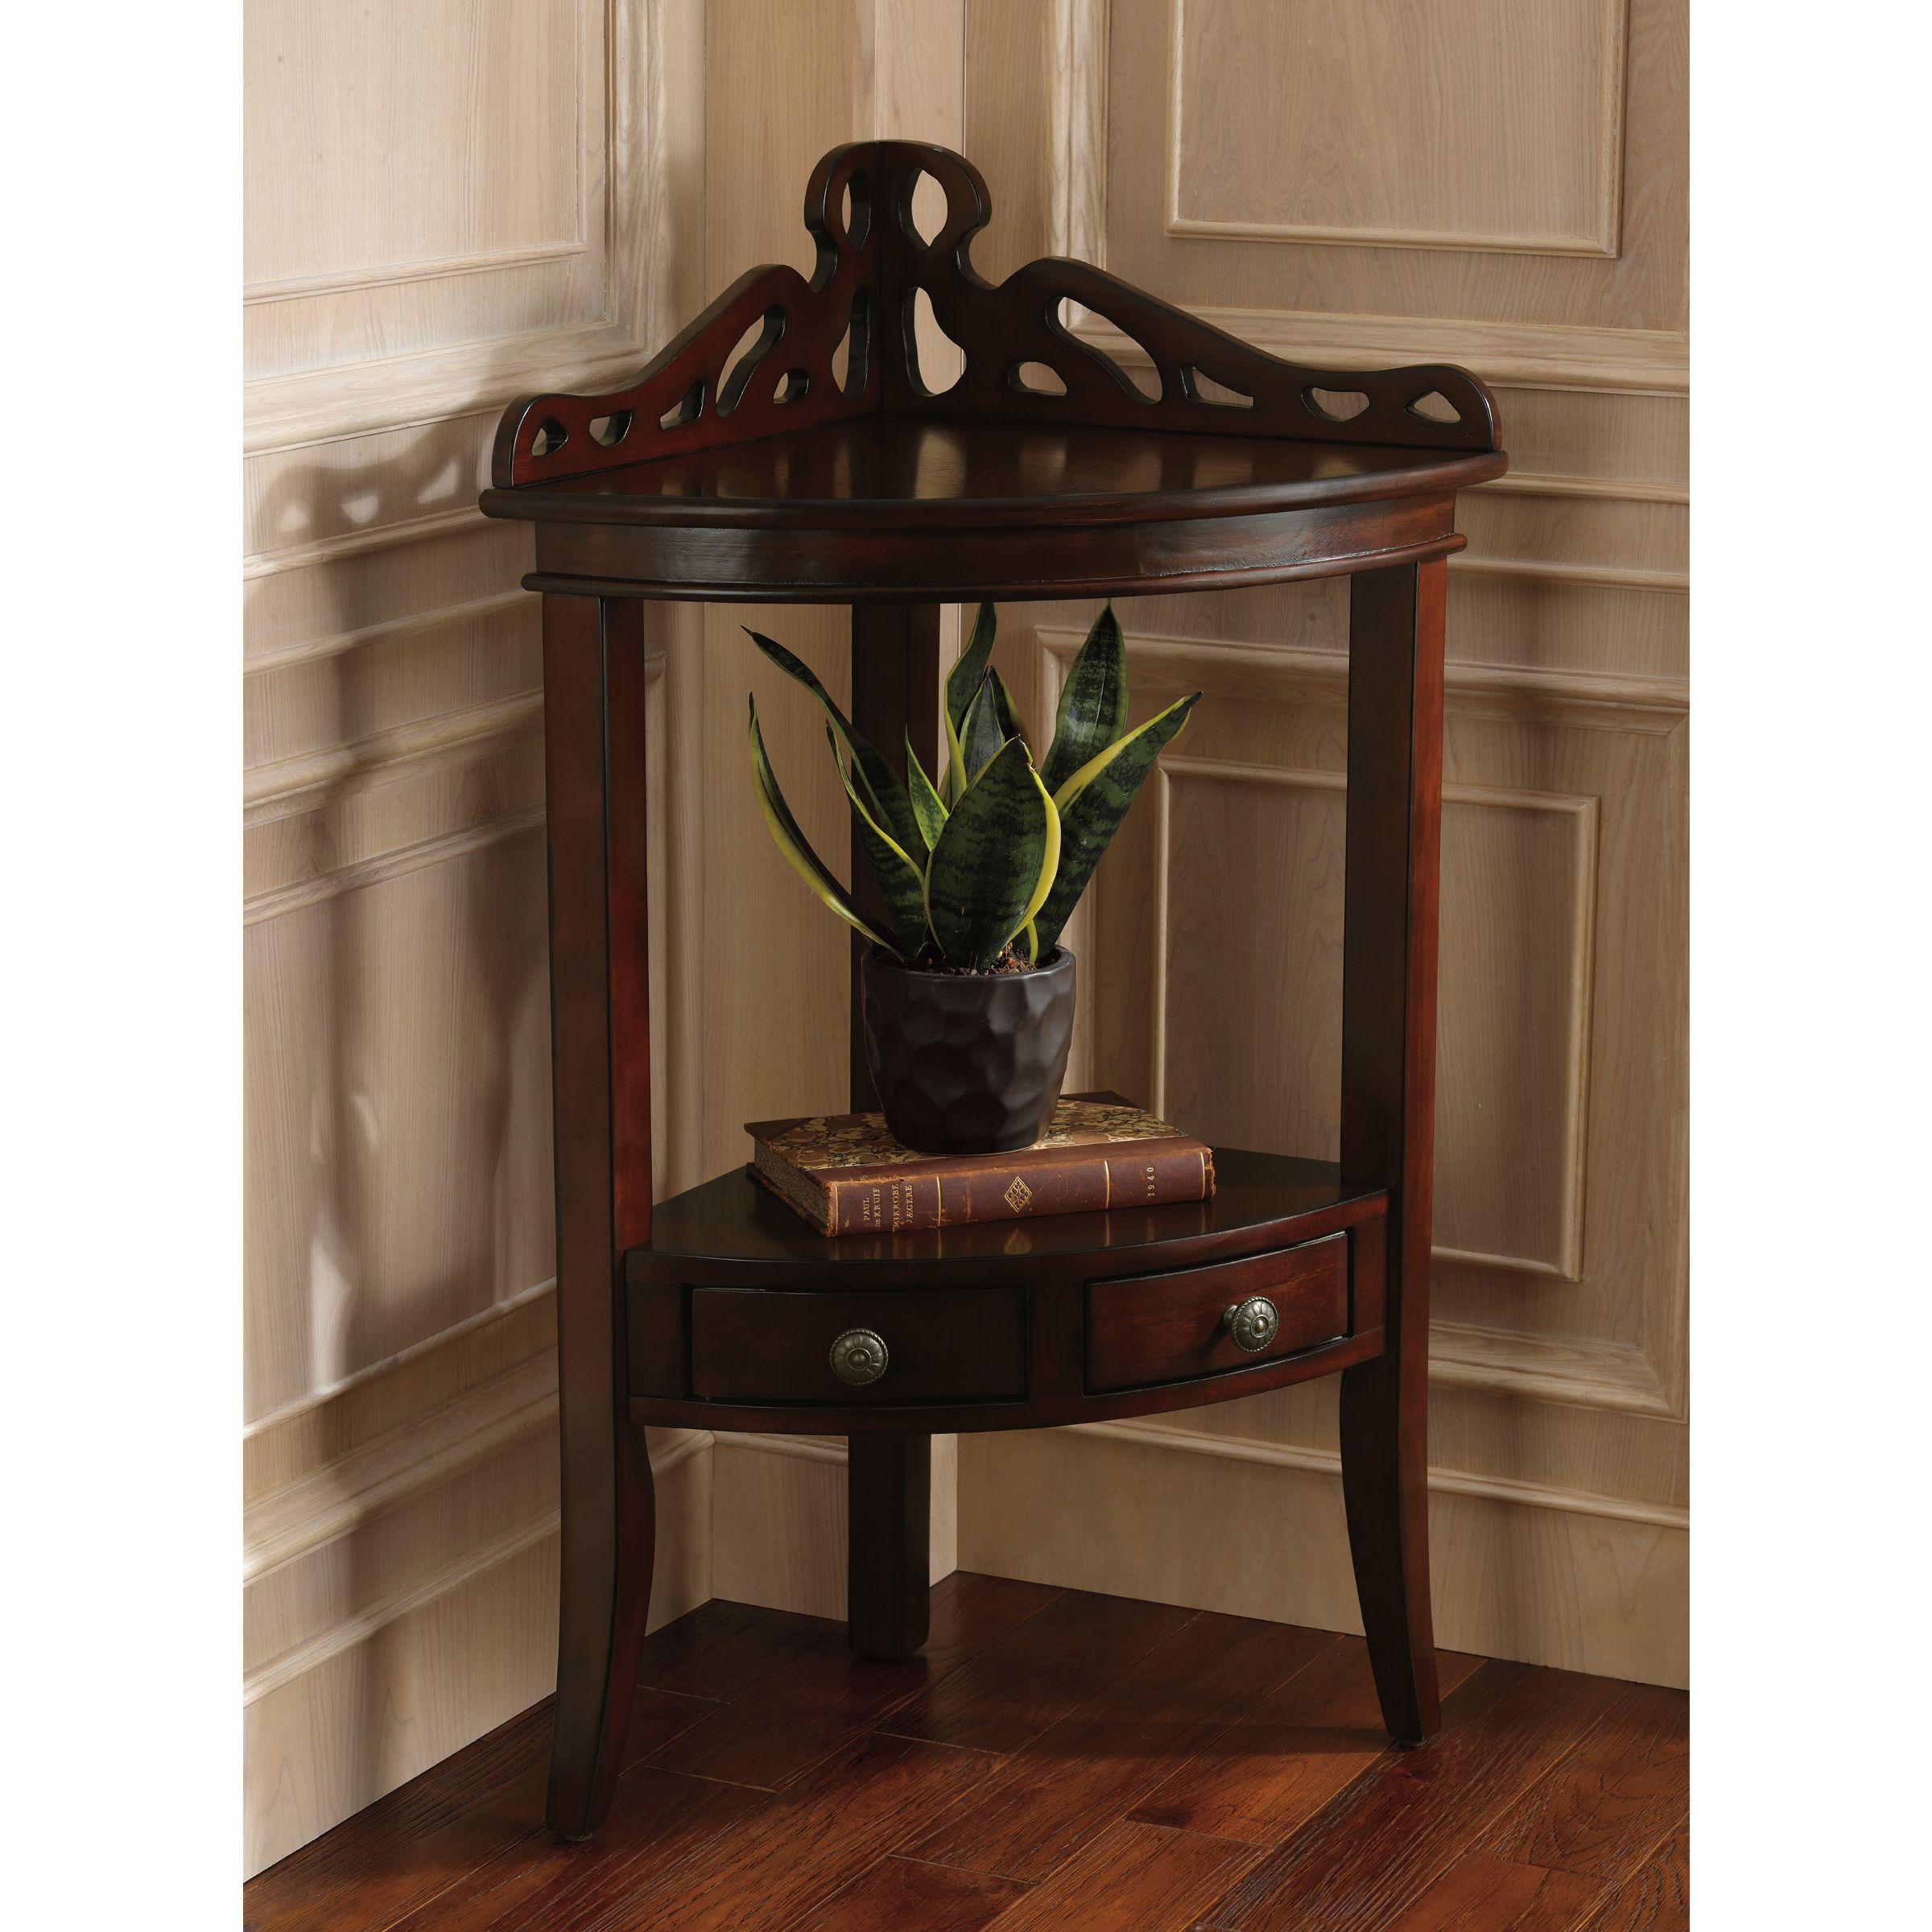 the grace corner accent table perfect piece fit elegantly into your entry hall living room bedroom sits flush black solid wood coffee patio furniture covers shoe organizer target